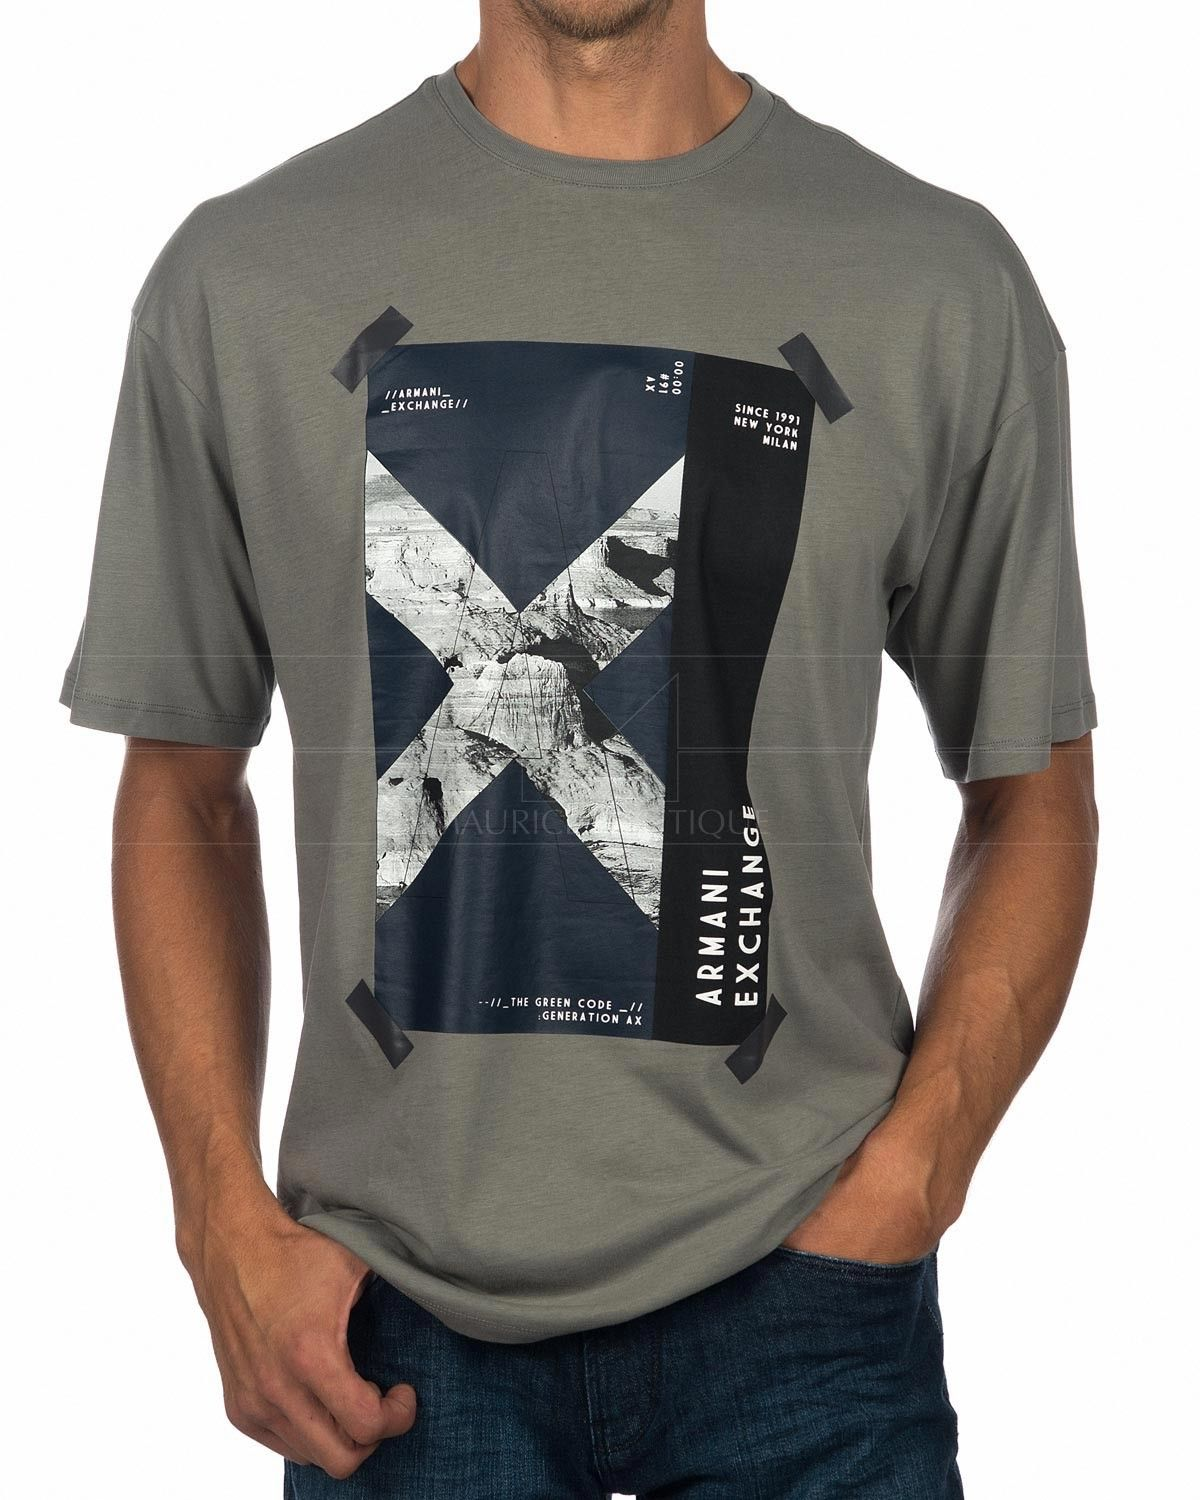 f2773e144cd7 Armani Exchange T-Shirt - The Green Code in 2019 | Black shirt | T ...